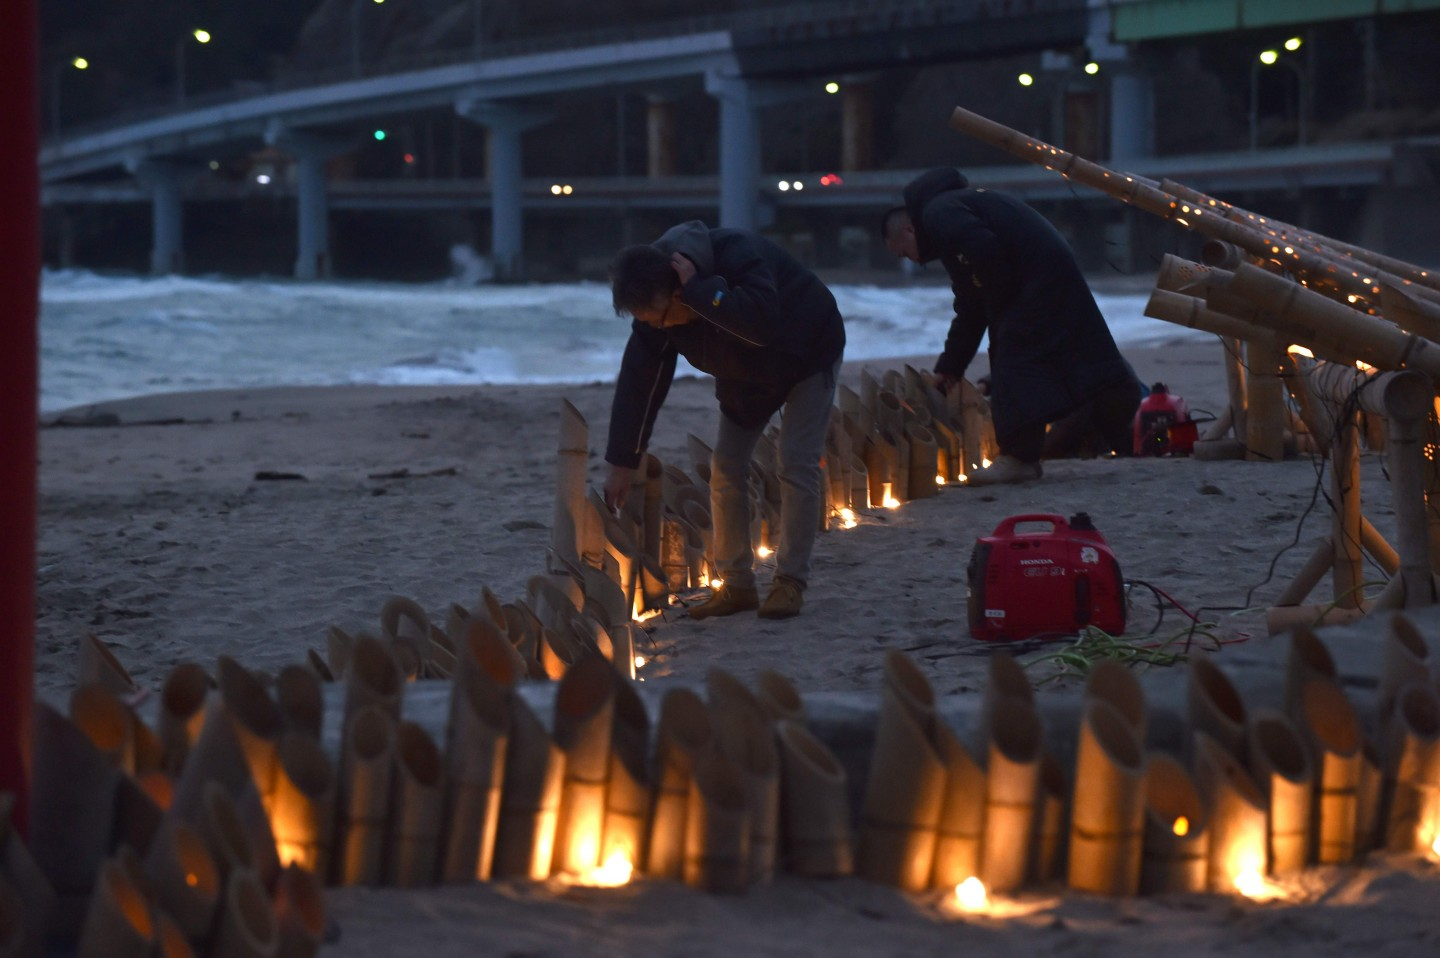 Local volunteers prepare a candle service for people who have just returned from Wuhan and are quarantined in a hotel in Katsuura, Chiba Prefecture, on 12 February 2020. (Kazuhiro Nogi/AFP)